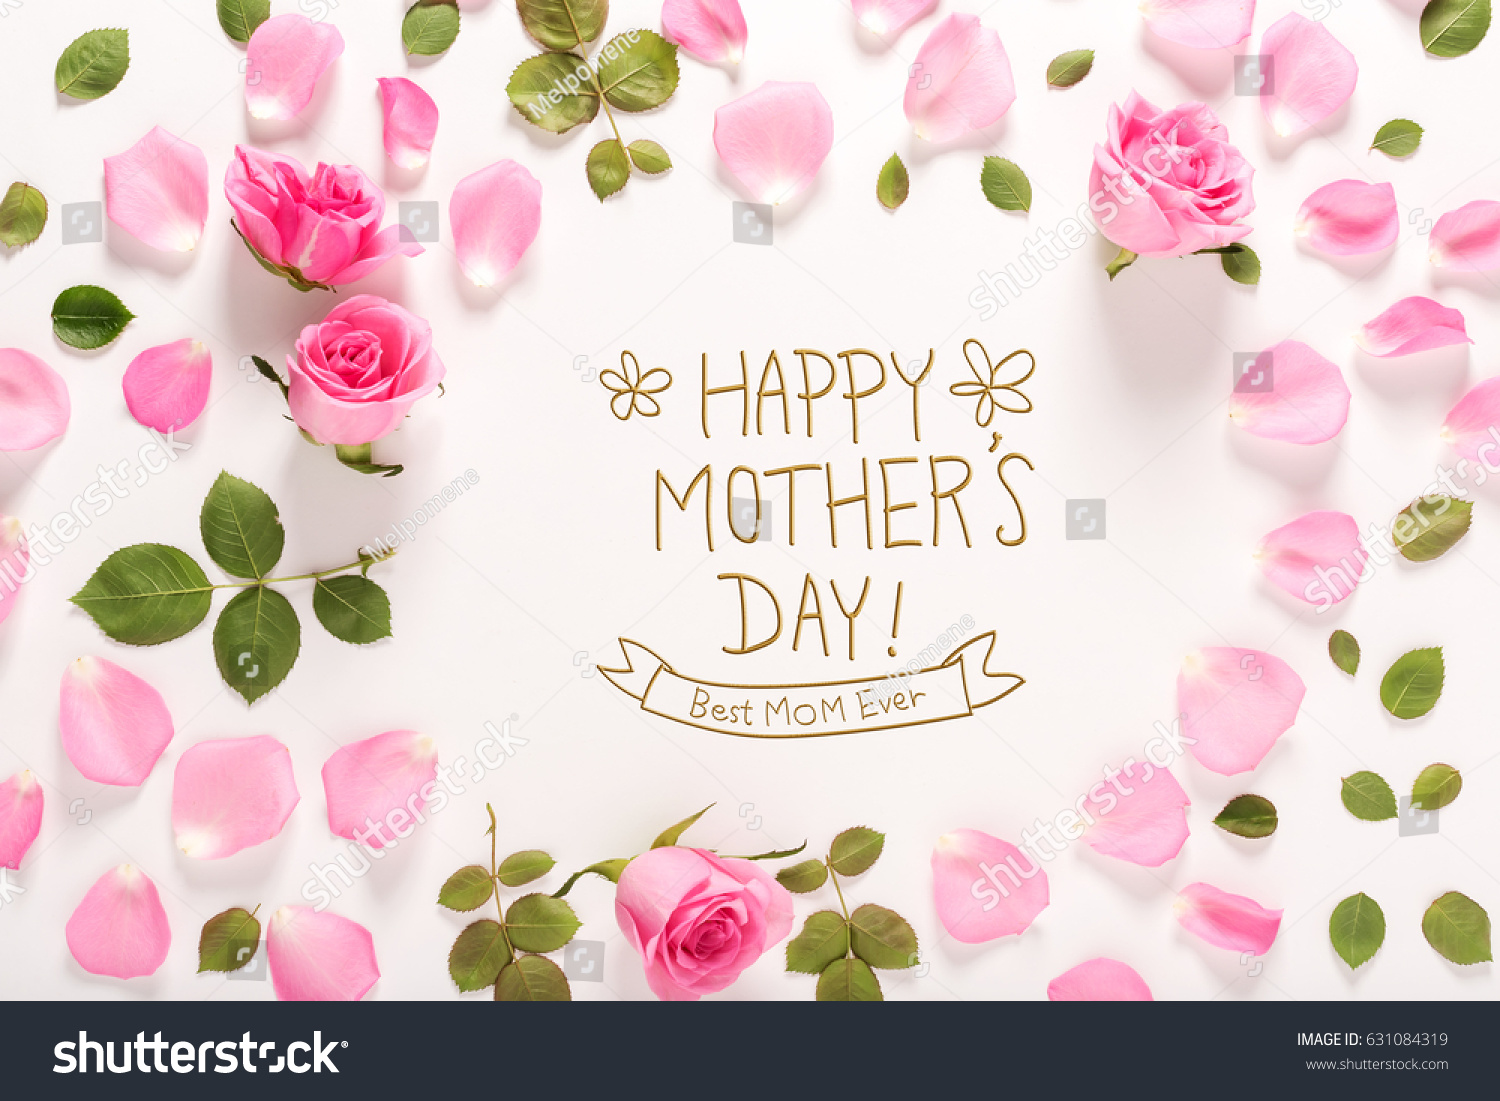 Happy Mothers Day Message Roses Leaves Stock Photo Image Royalty